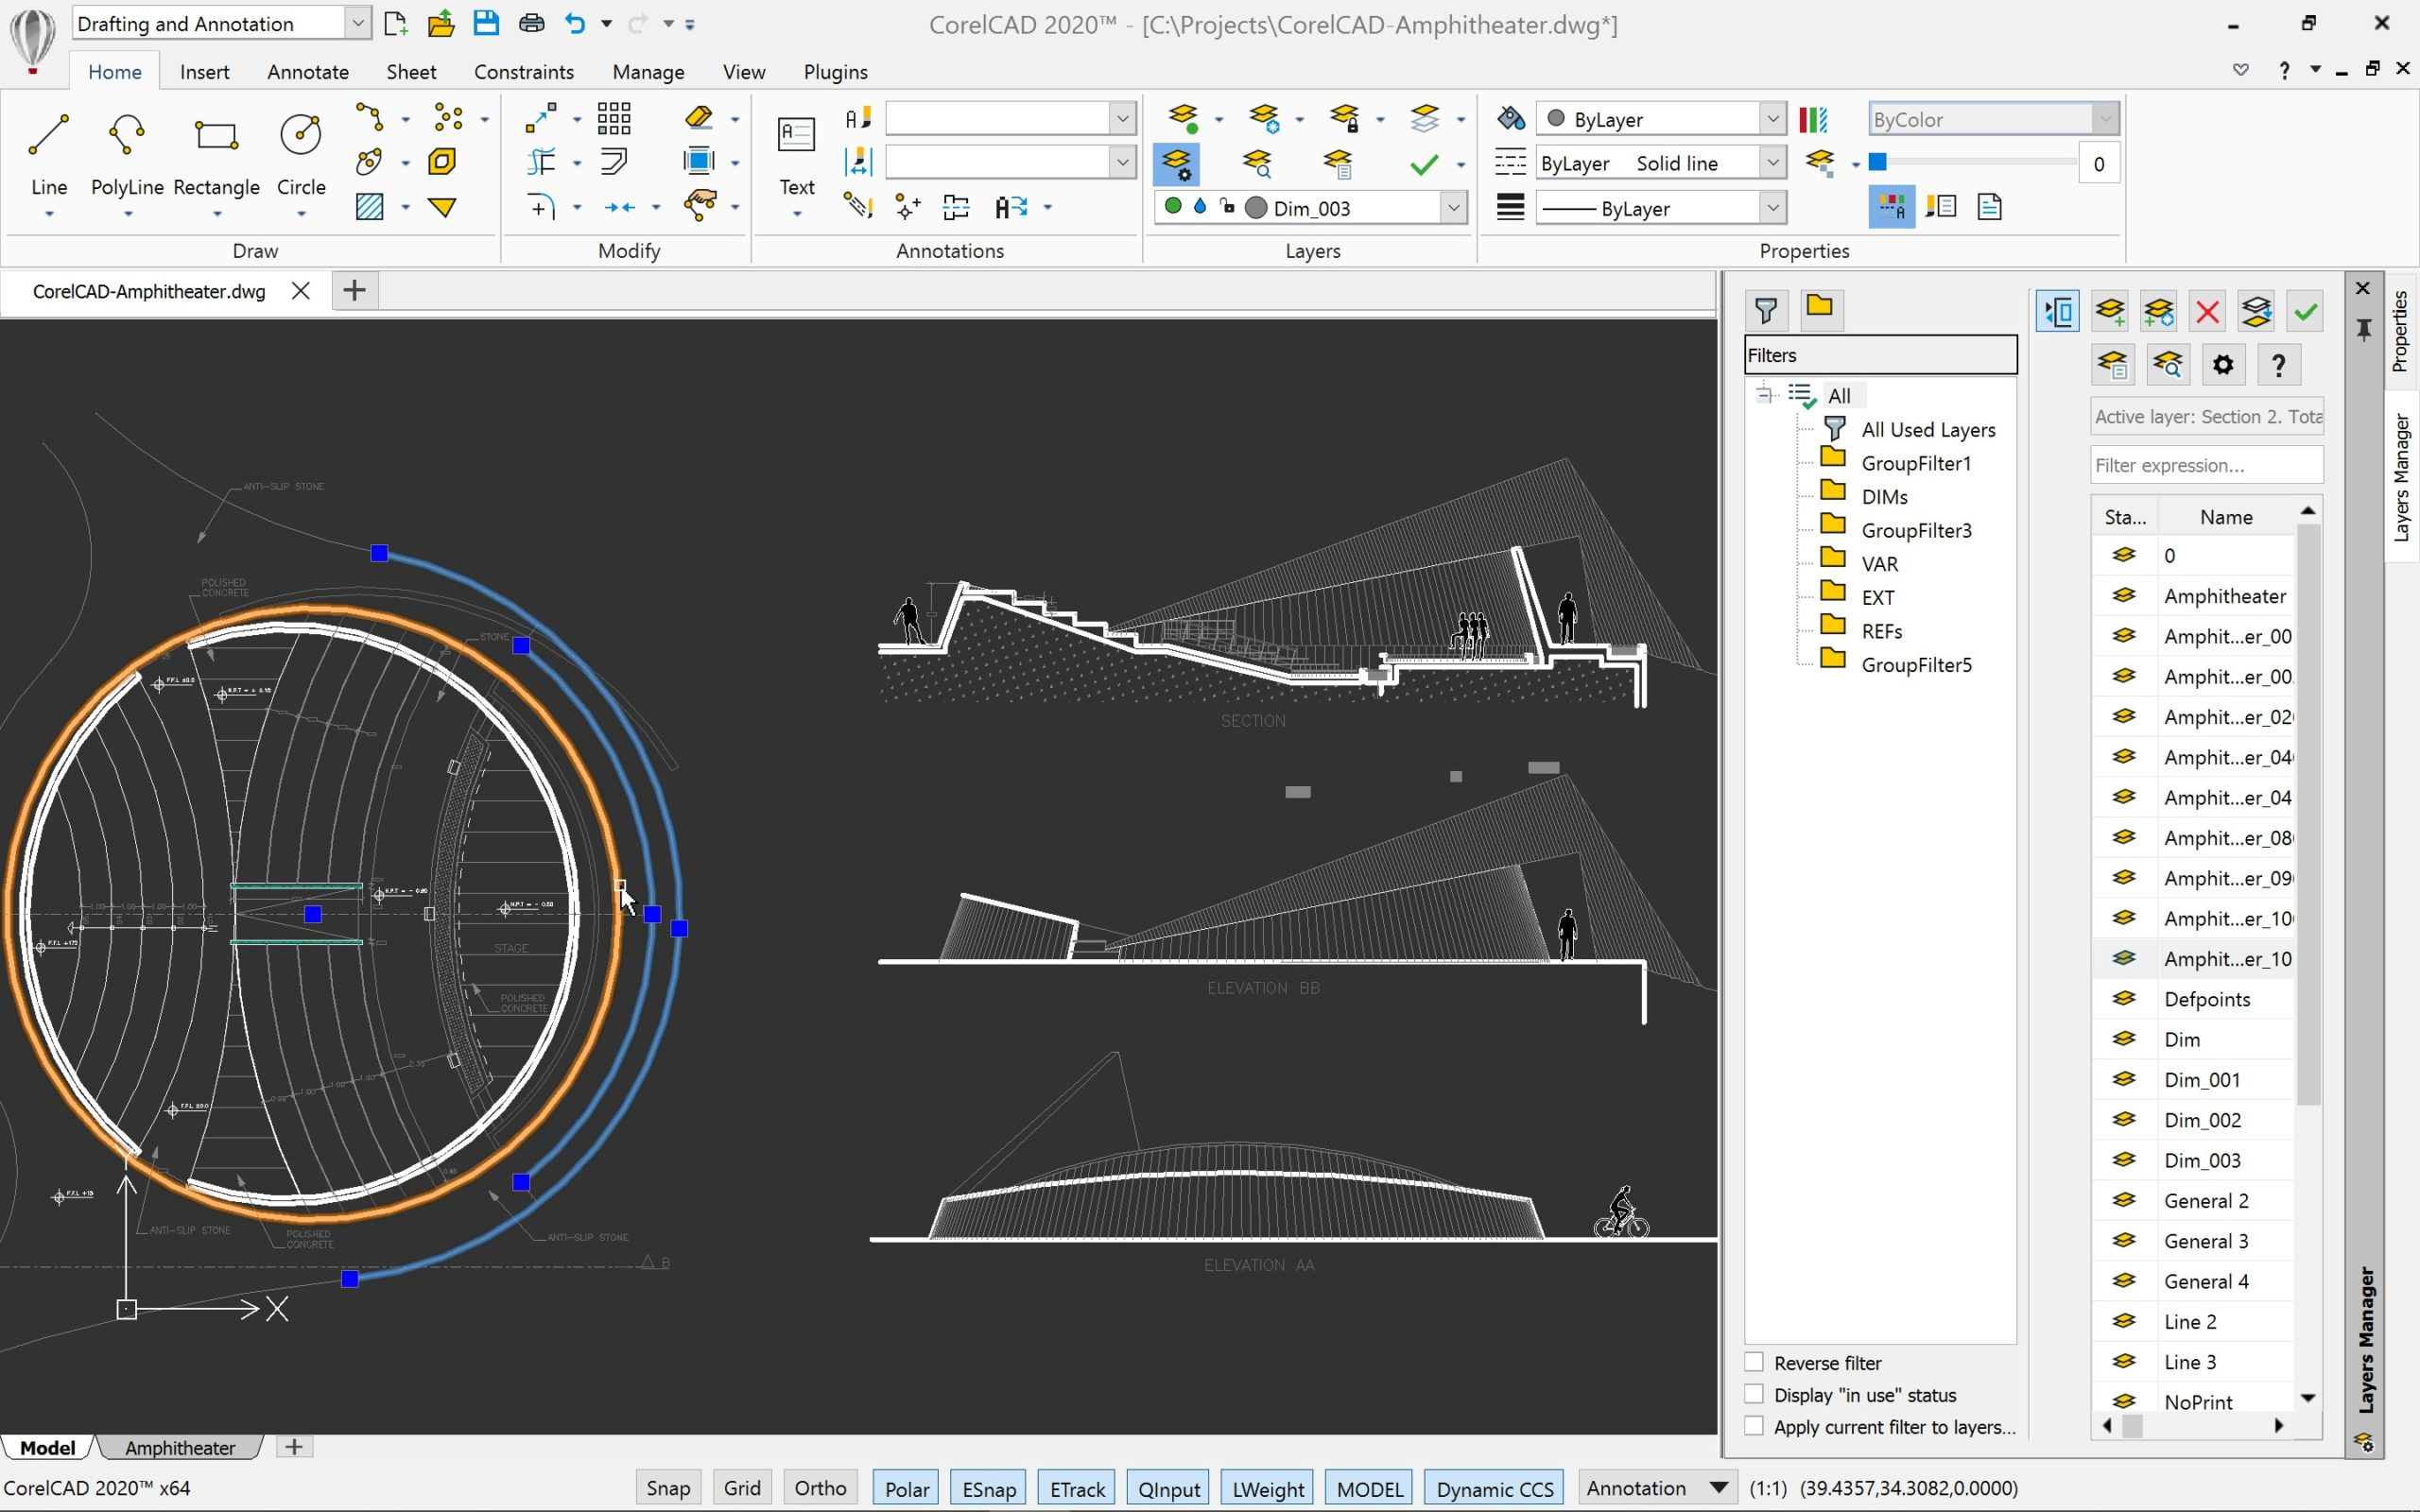 corelcad-2020-layer-group-filters-windows